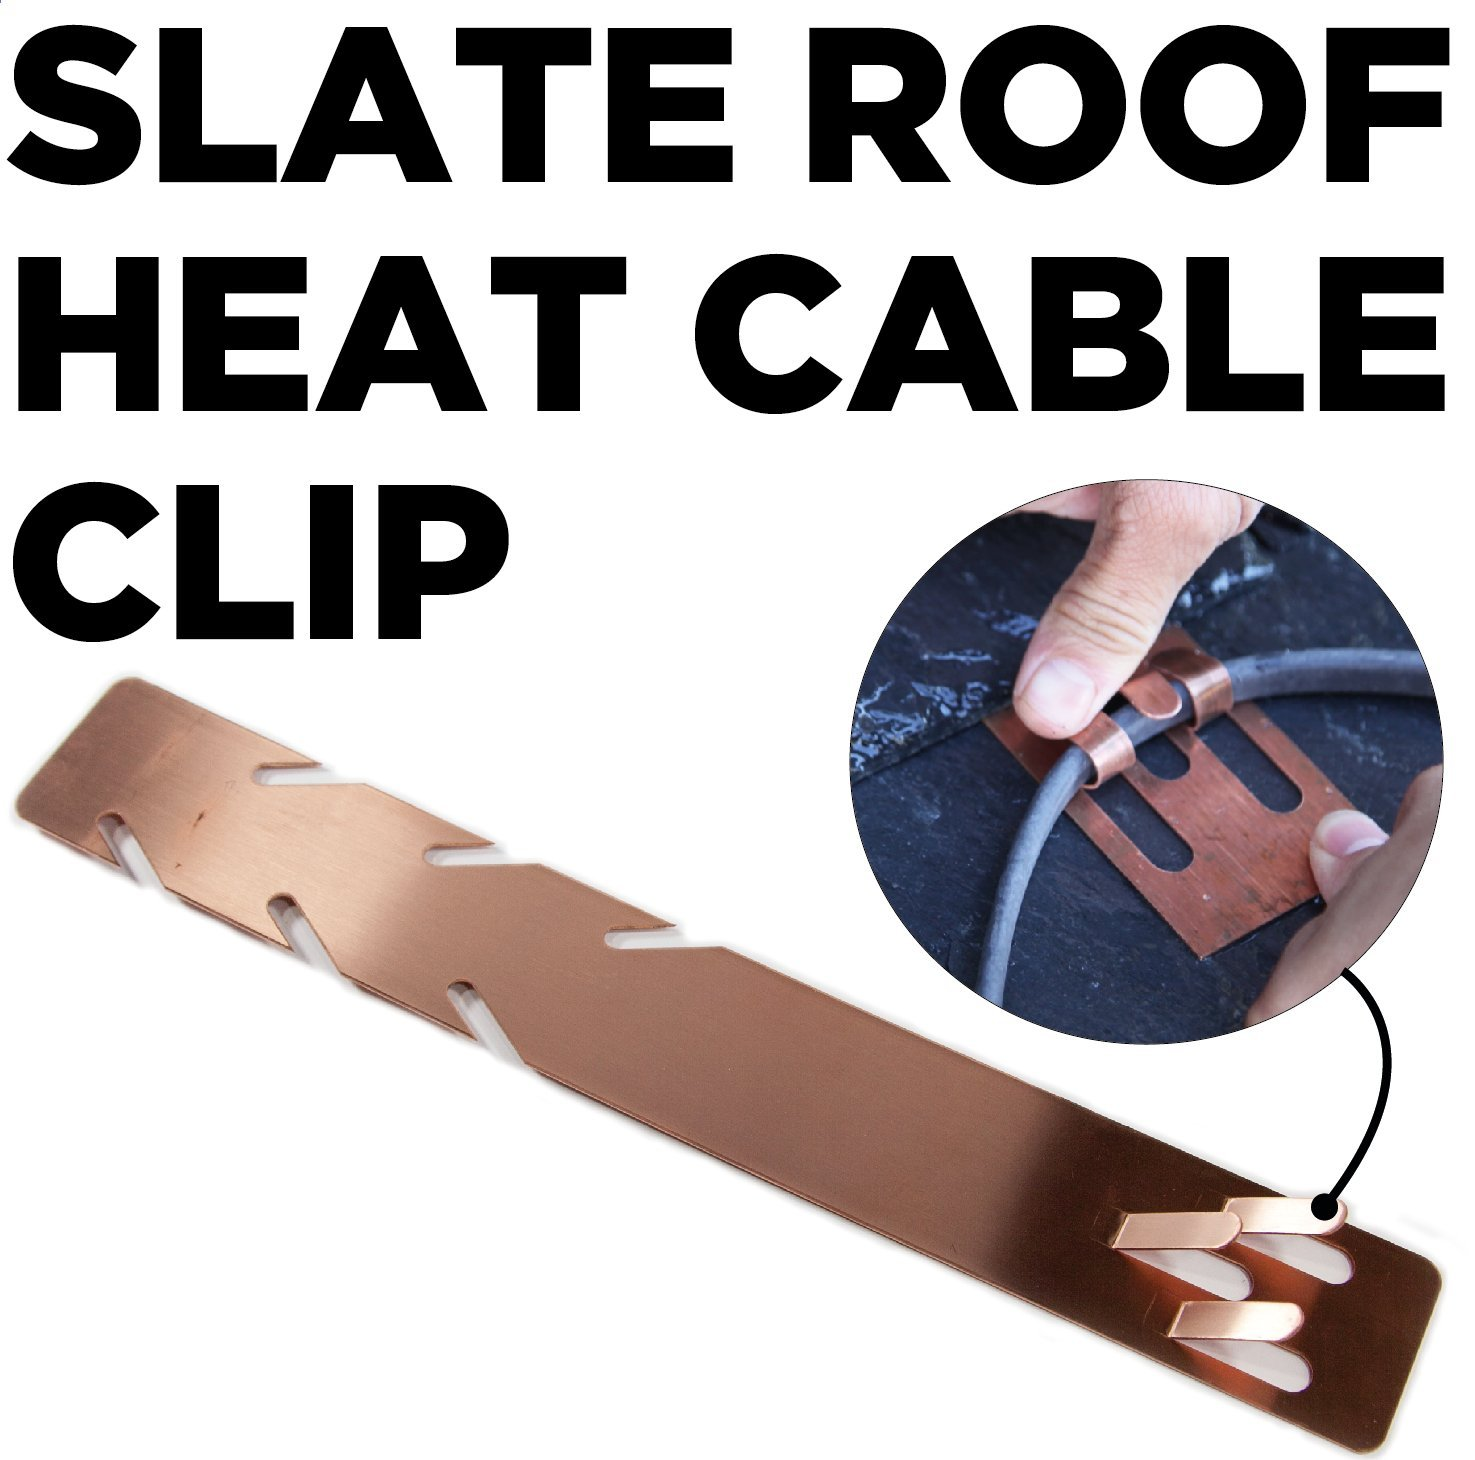 Copper Clip for Mounting Heat Cable and Heat Tape to Slate Roofs without nails, screws or adhesives